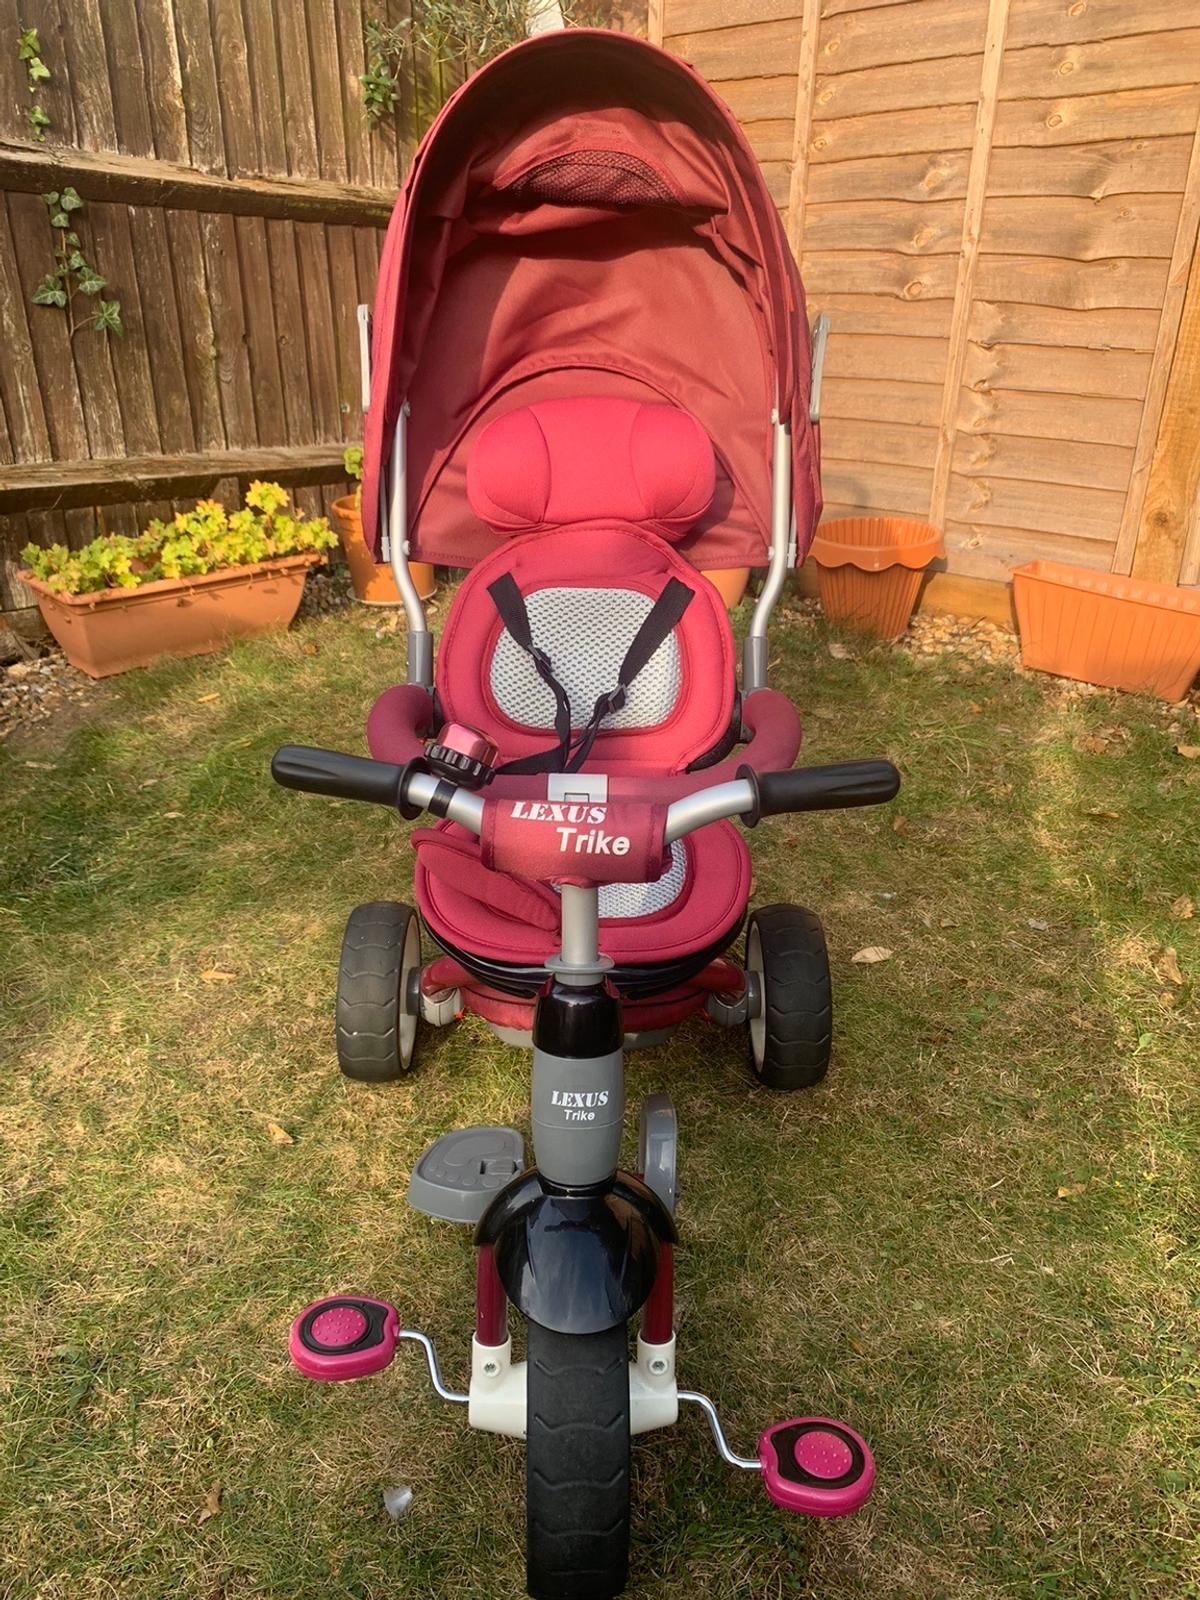 Condition: as new, used for couple of months only, RRP 110. Smart trike 5 in 1, suitable for age of 6 months up to 4 years. It turns into a tricycle, rotating seat, hood, harness and 2 storage bags. Payment on collection only from N12 London